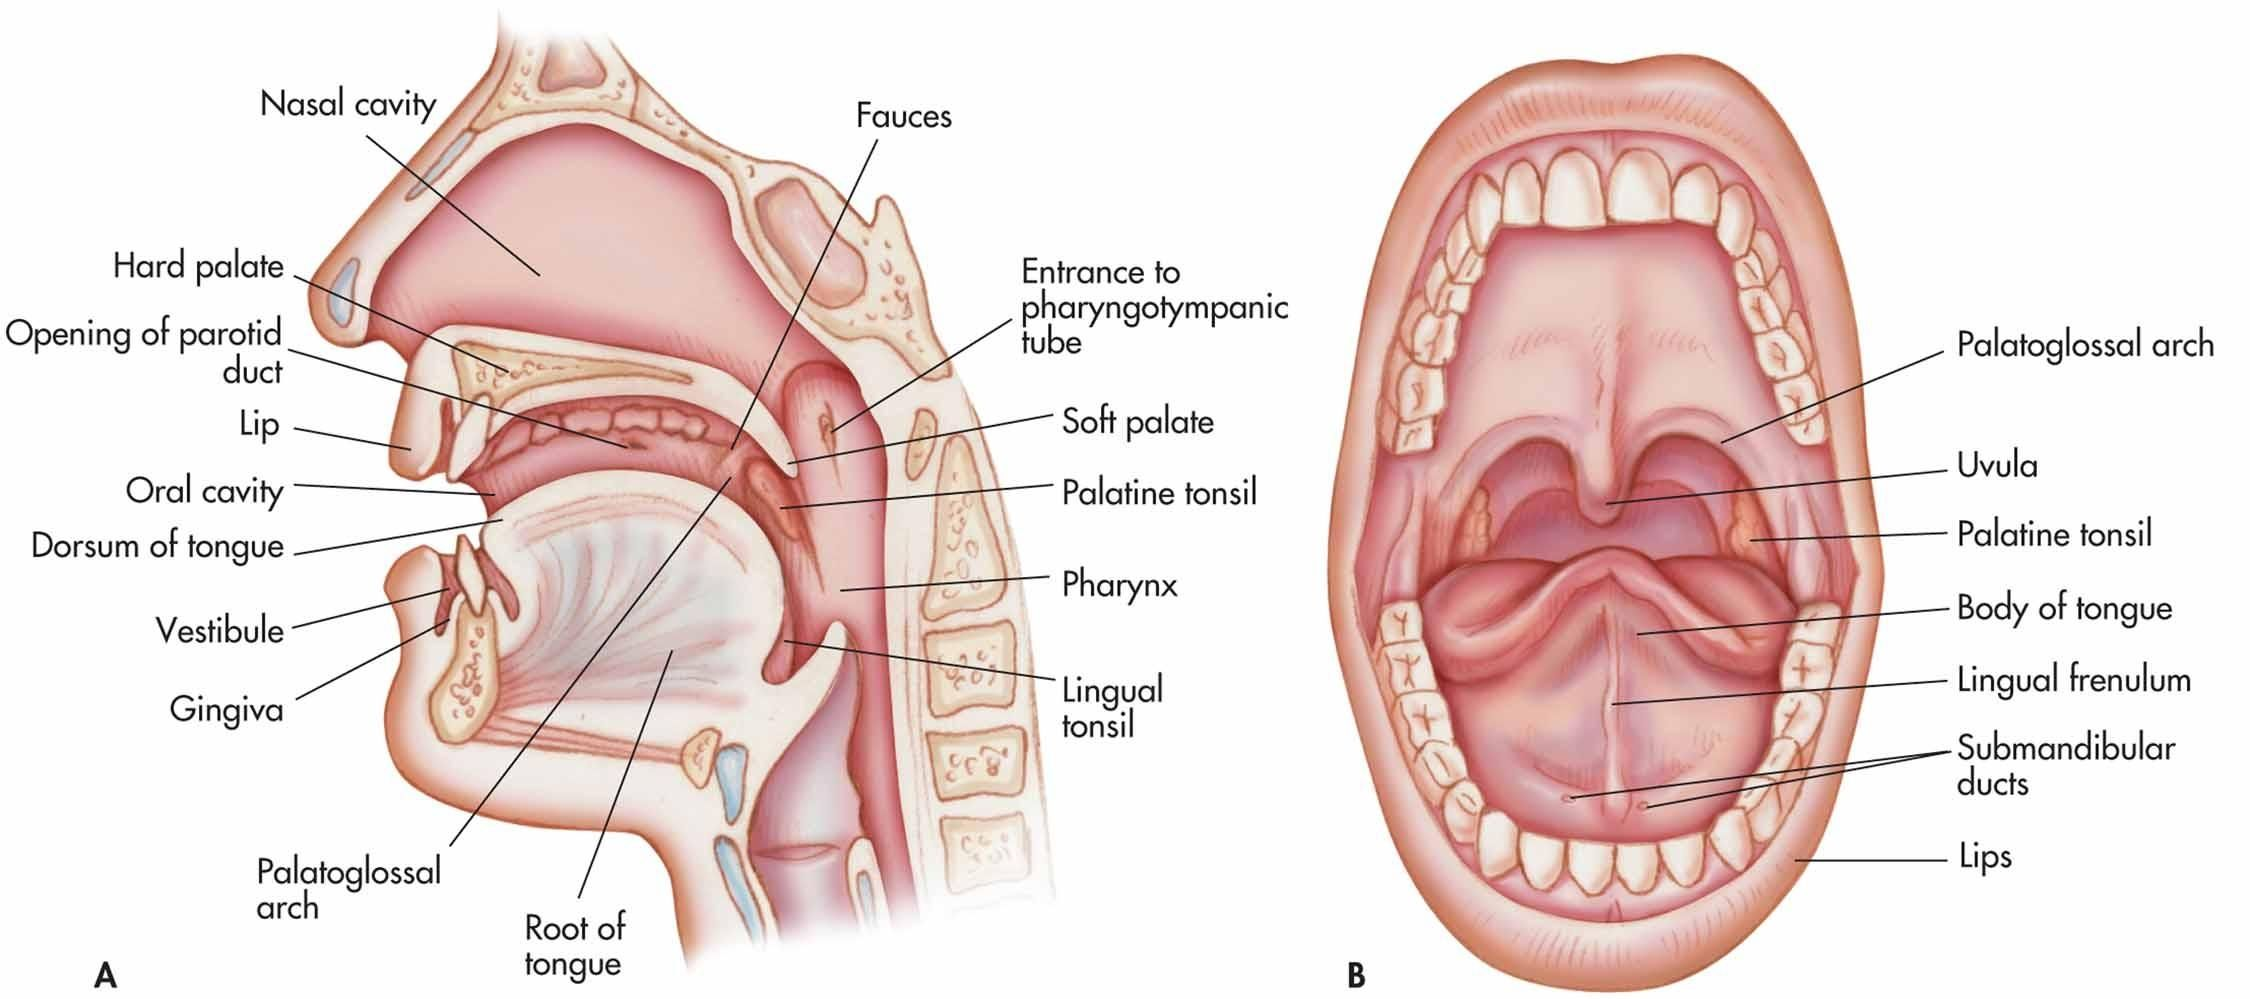 Anatomy Of Mouth Anatomy Of Oral Cavity Human Anatomy Diagram ...